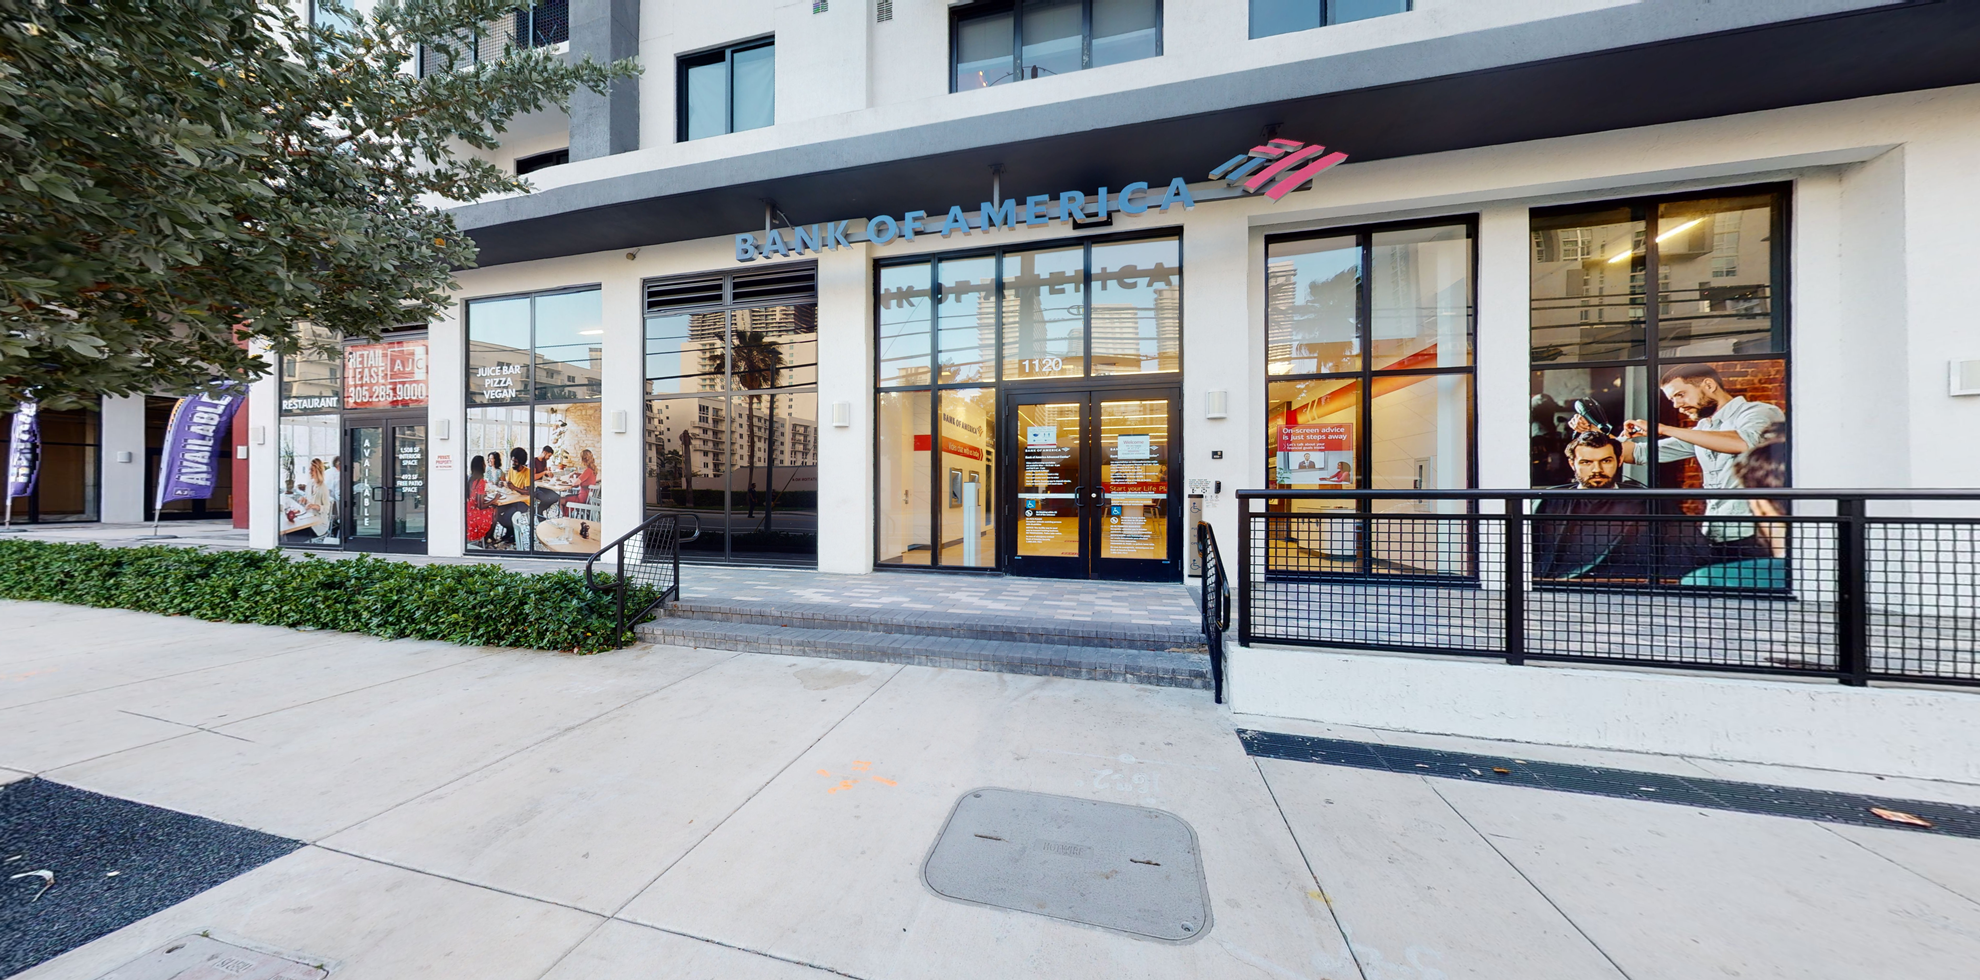 Bank of America Advanced Center with walk-up ATM | 1120 SW 2nd Ave, Miami, FL 33130